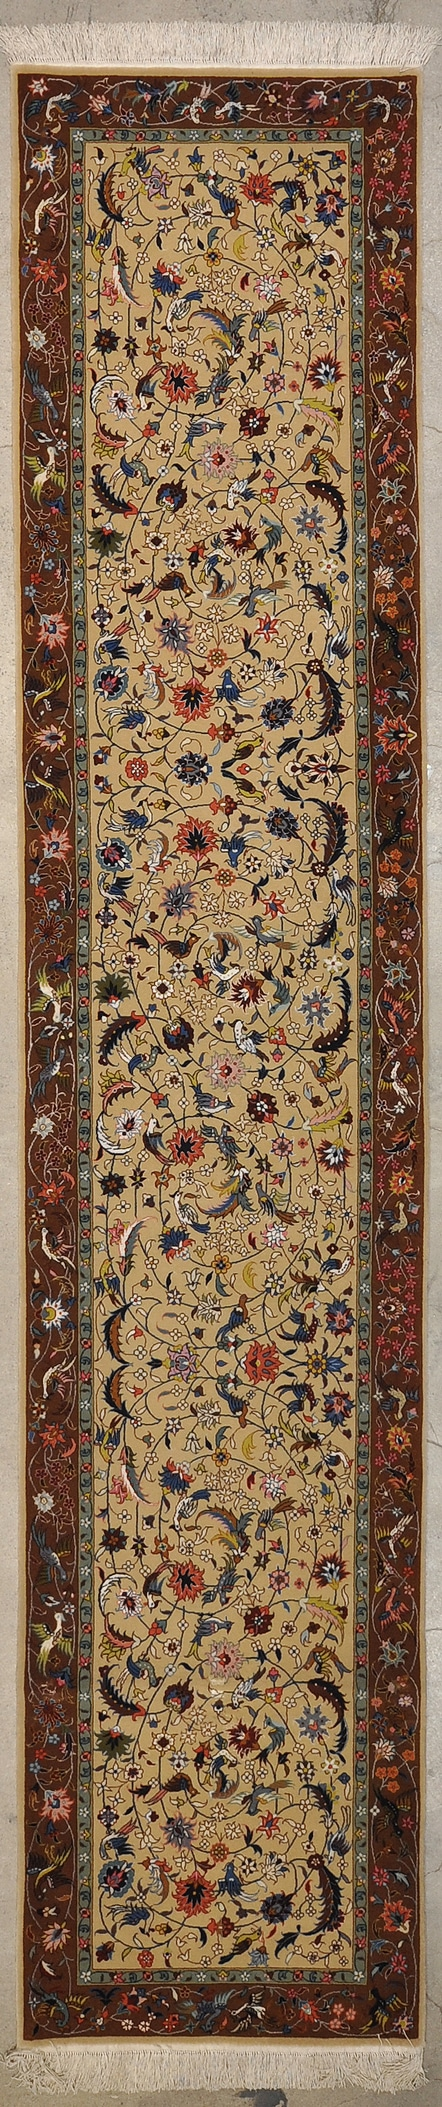 Fine Wool & Silk Tabriz Runner rugs and more oriental carpet 44003-